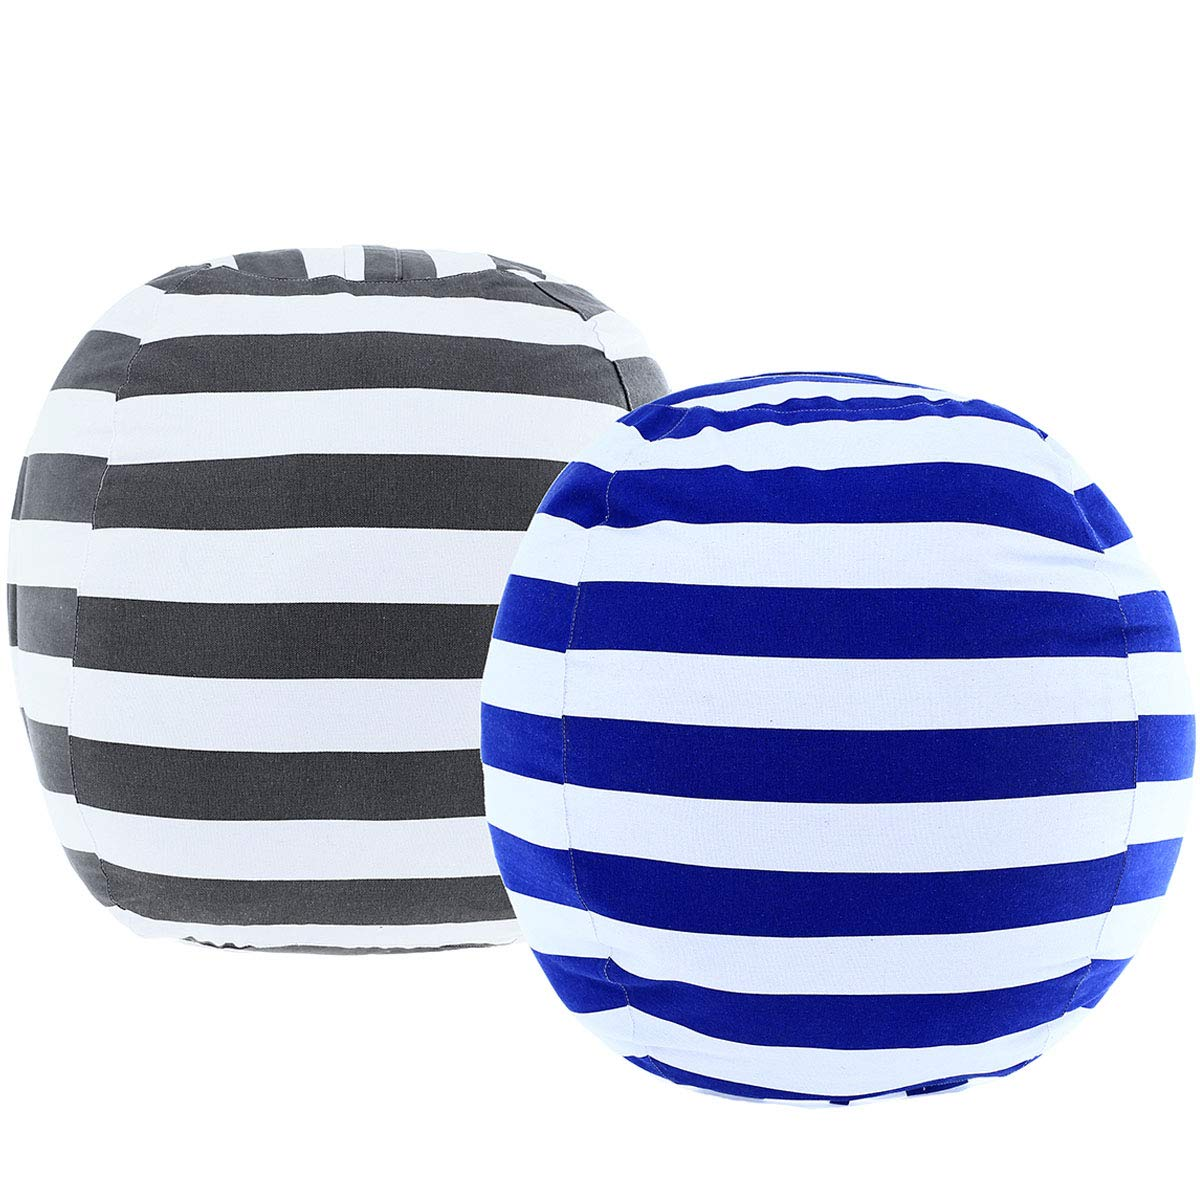 DeElf 2 Pack Stuffed Animal Storage Bean Bag Cover 23'' for Kids Room DIY Bean Bag Chairs White Grey Blue Strips by DeELF Outlet